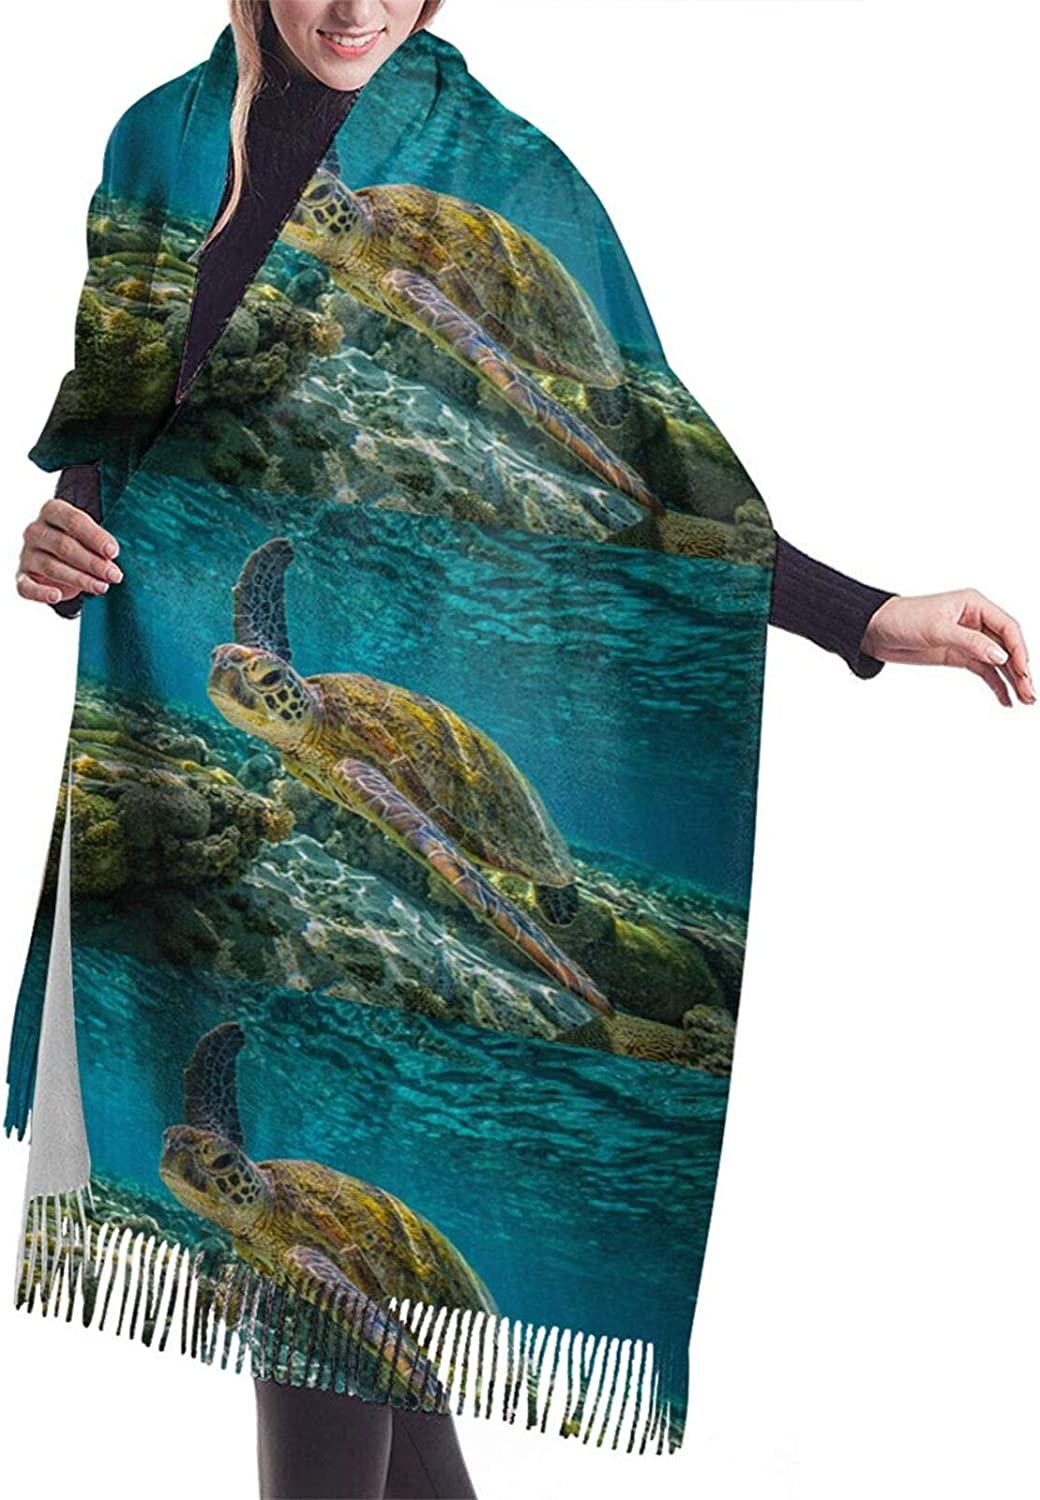 Sea Turtle Cashmere Feel Scarf Lightweight Soft Scarfs For Boys Girls Creative Warm Cold Weather Blanket Scarf